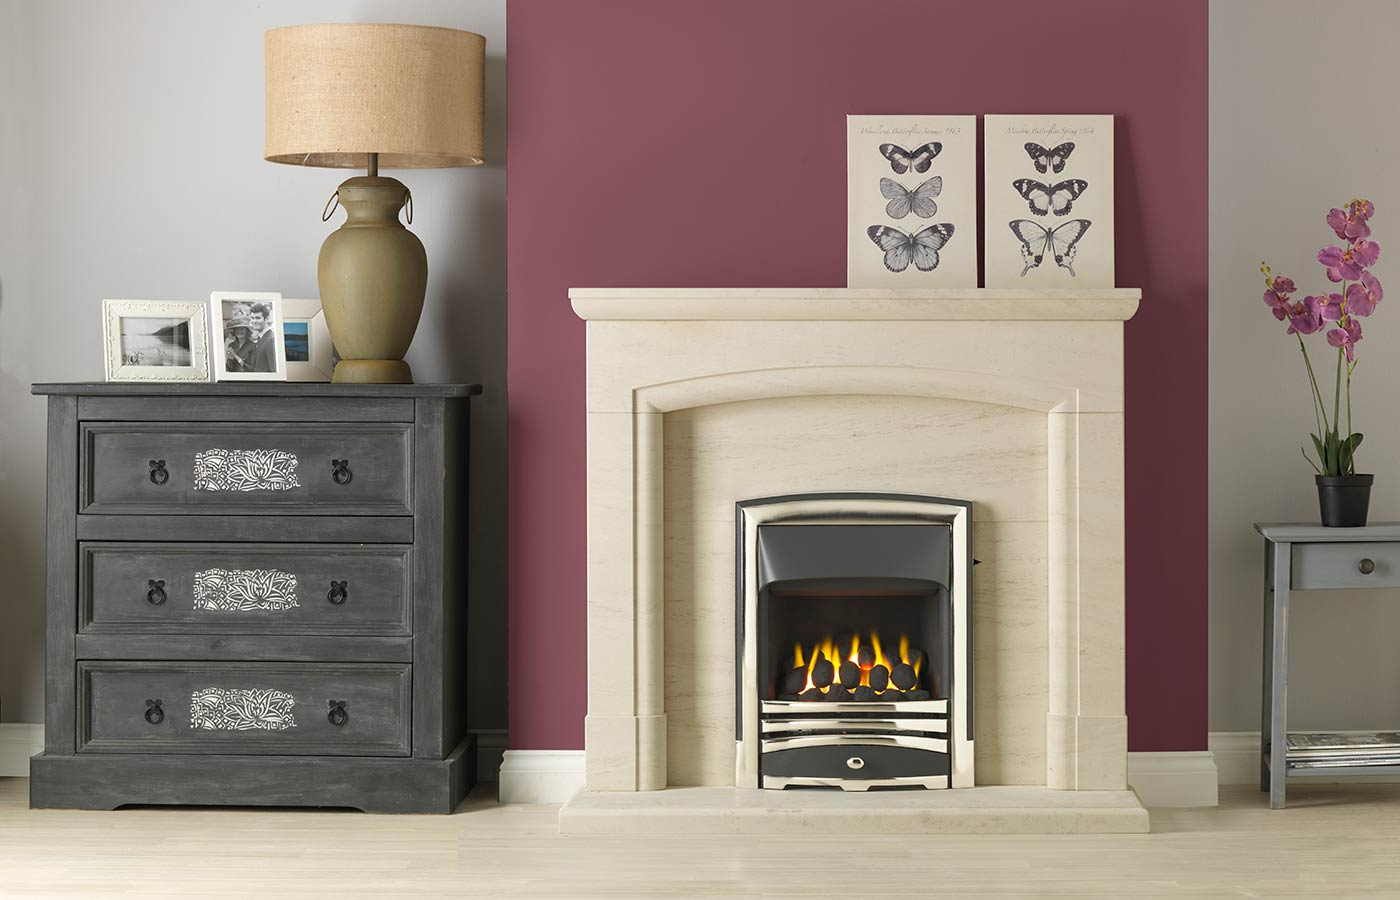 """Swainby 48"""" Fireplace Suite in Portuguese Limestone with Vision Callisto (Chrome) and Open-Fronted Gas Convector Fire (Slide Control)"""